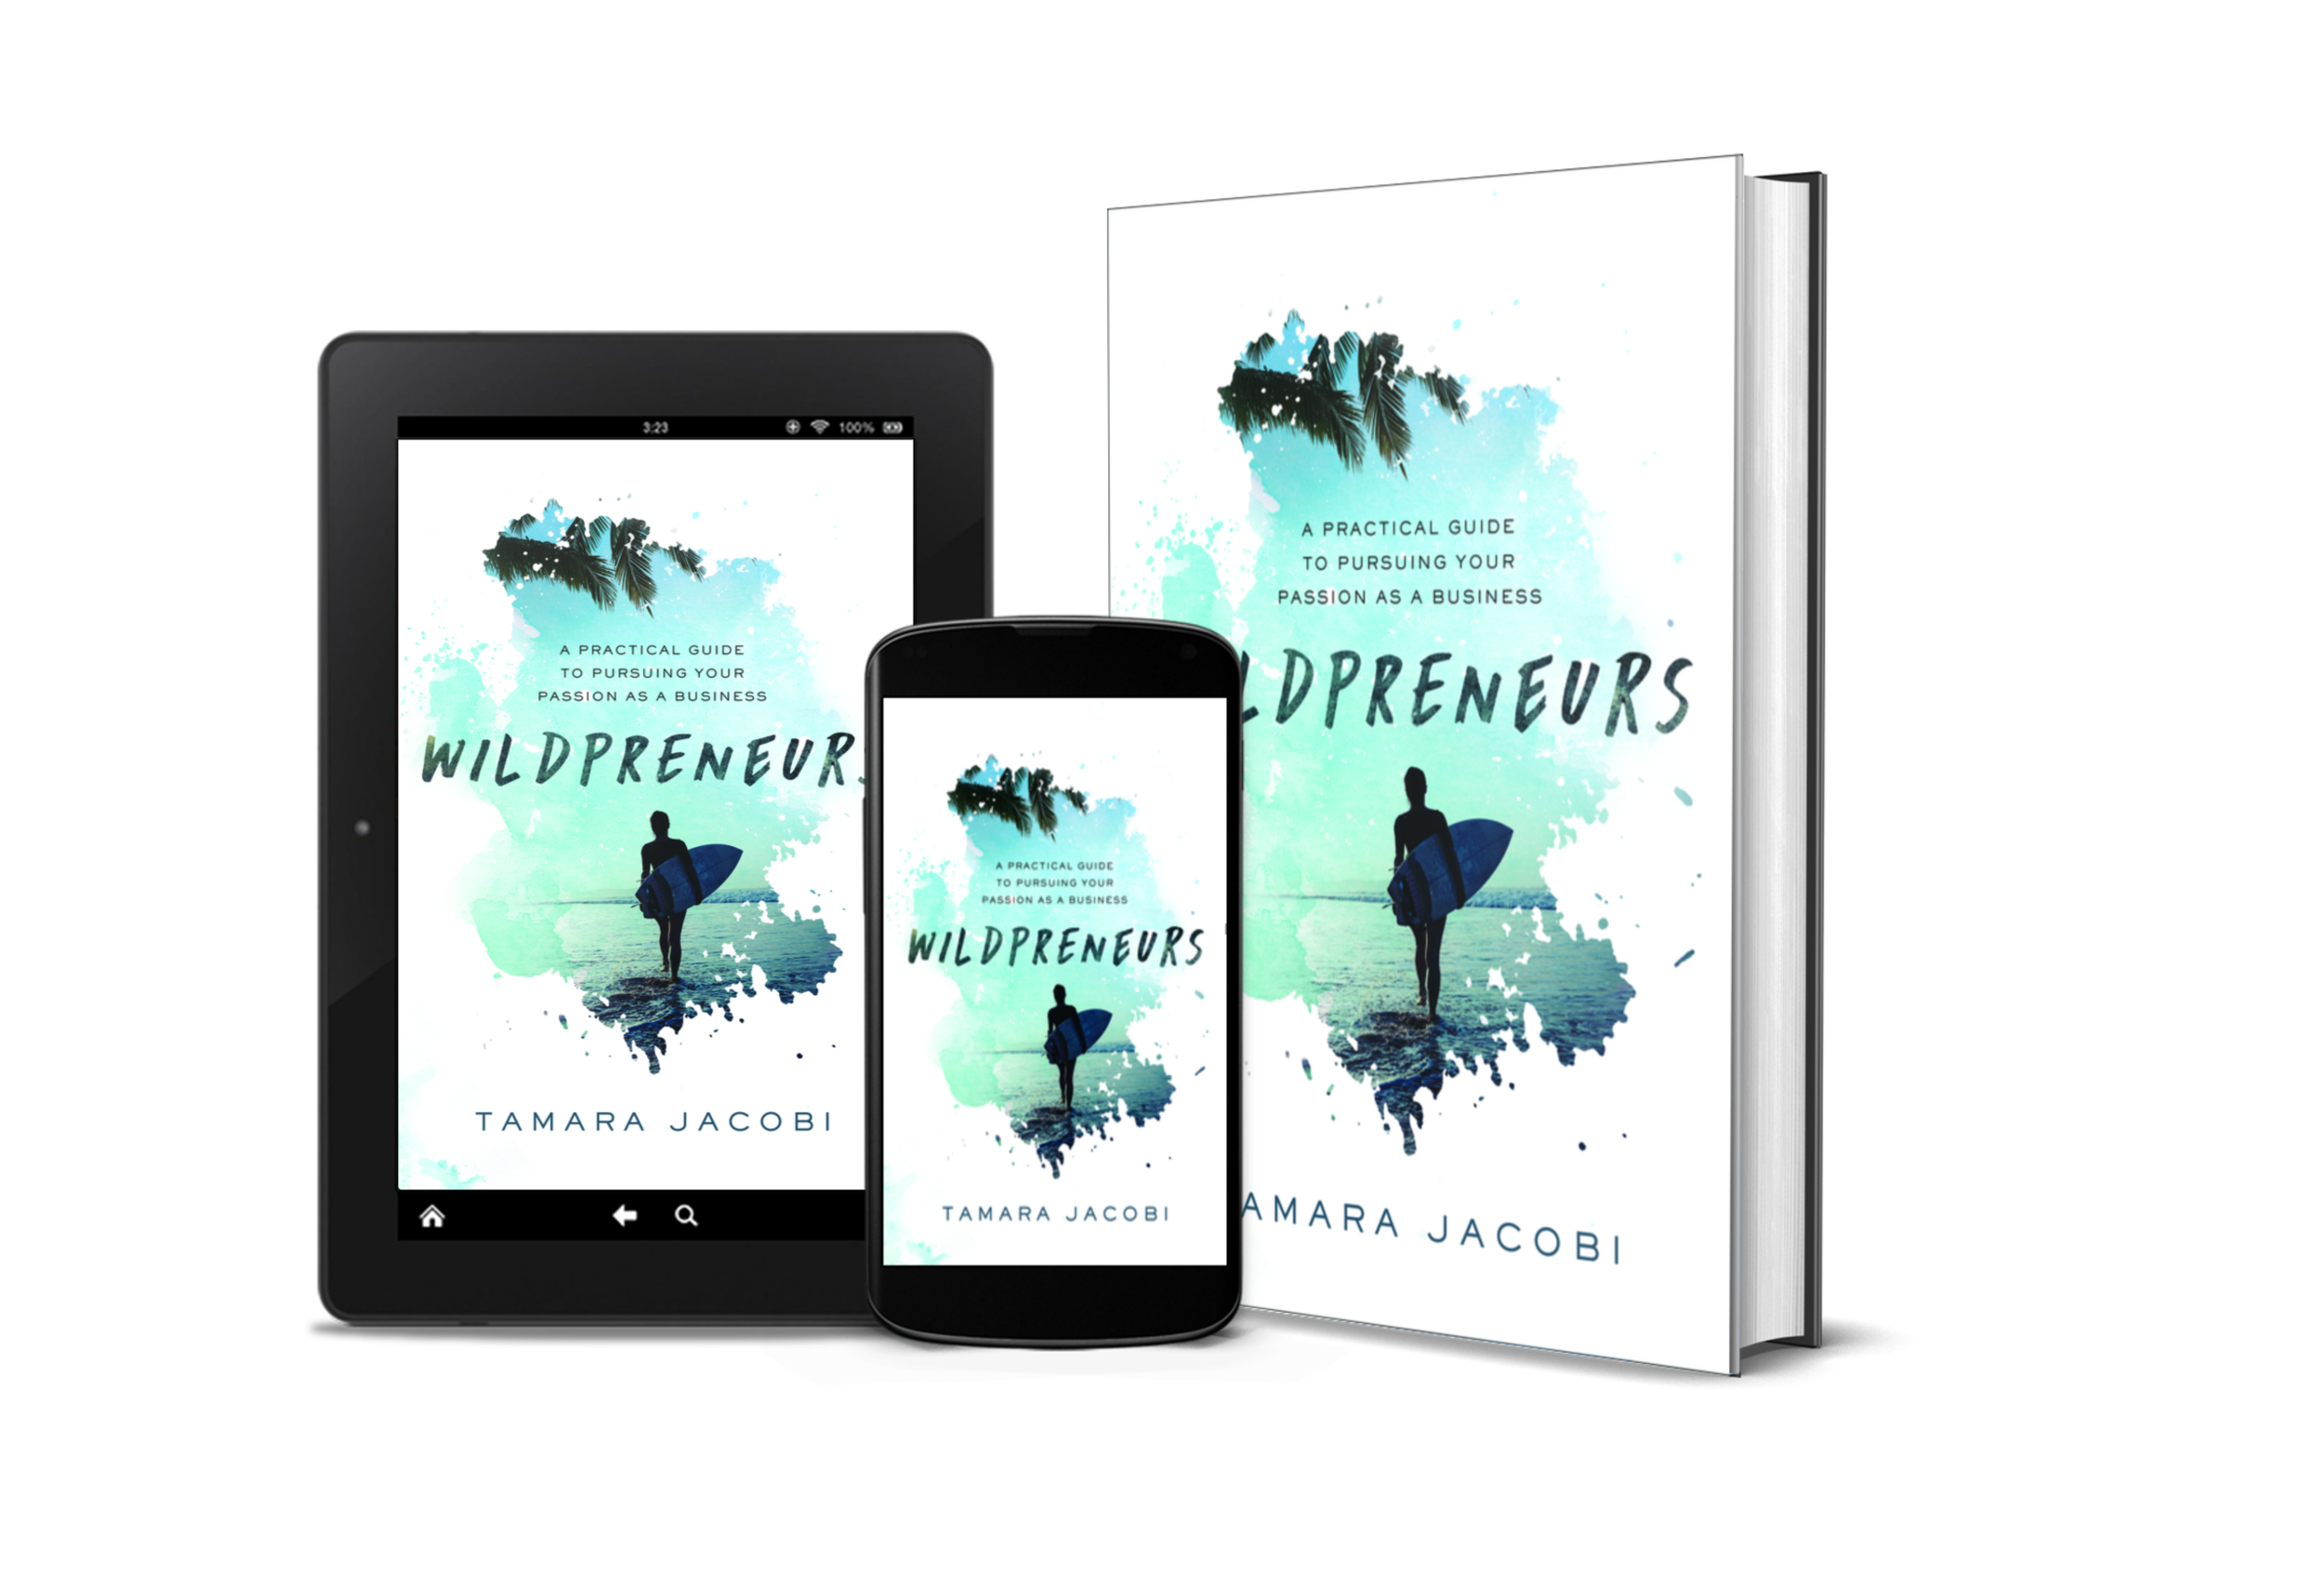 Book - Wildpreneurs is an essential guidebook for turning your passion into business.